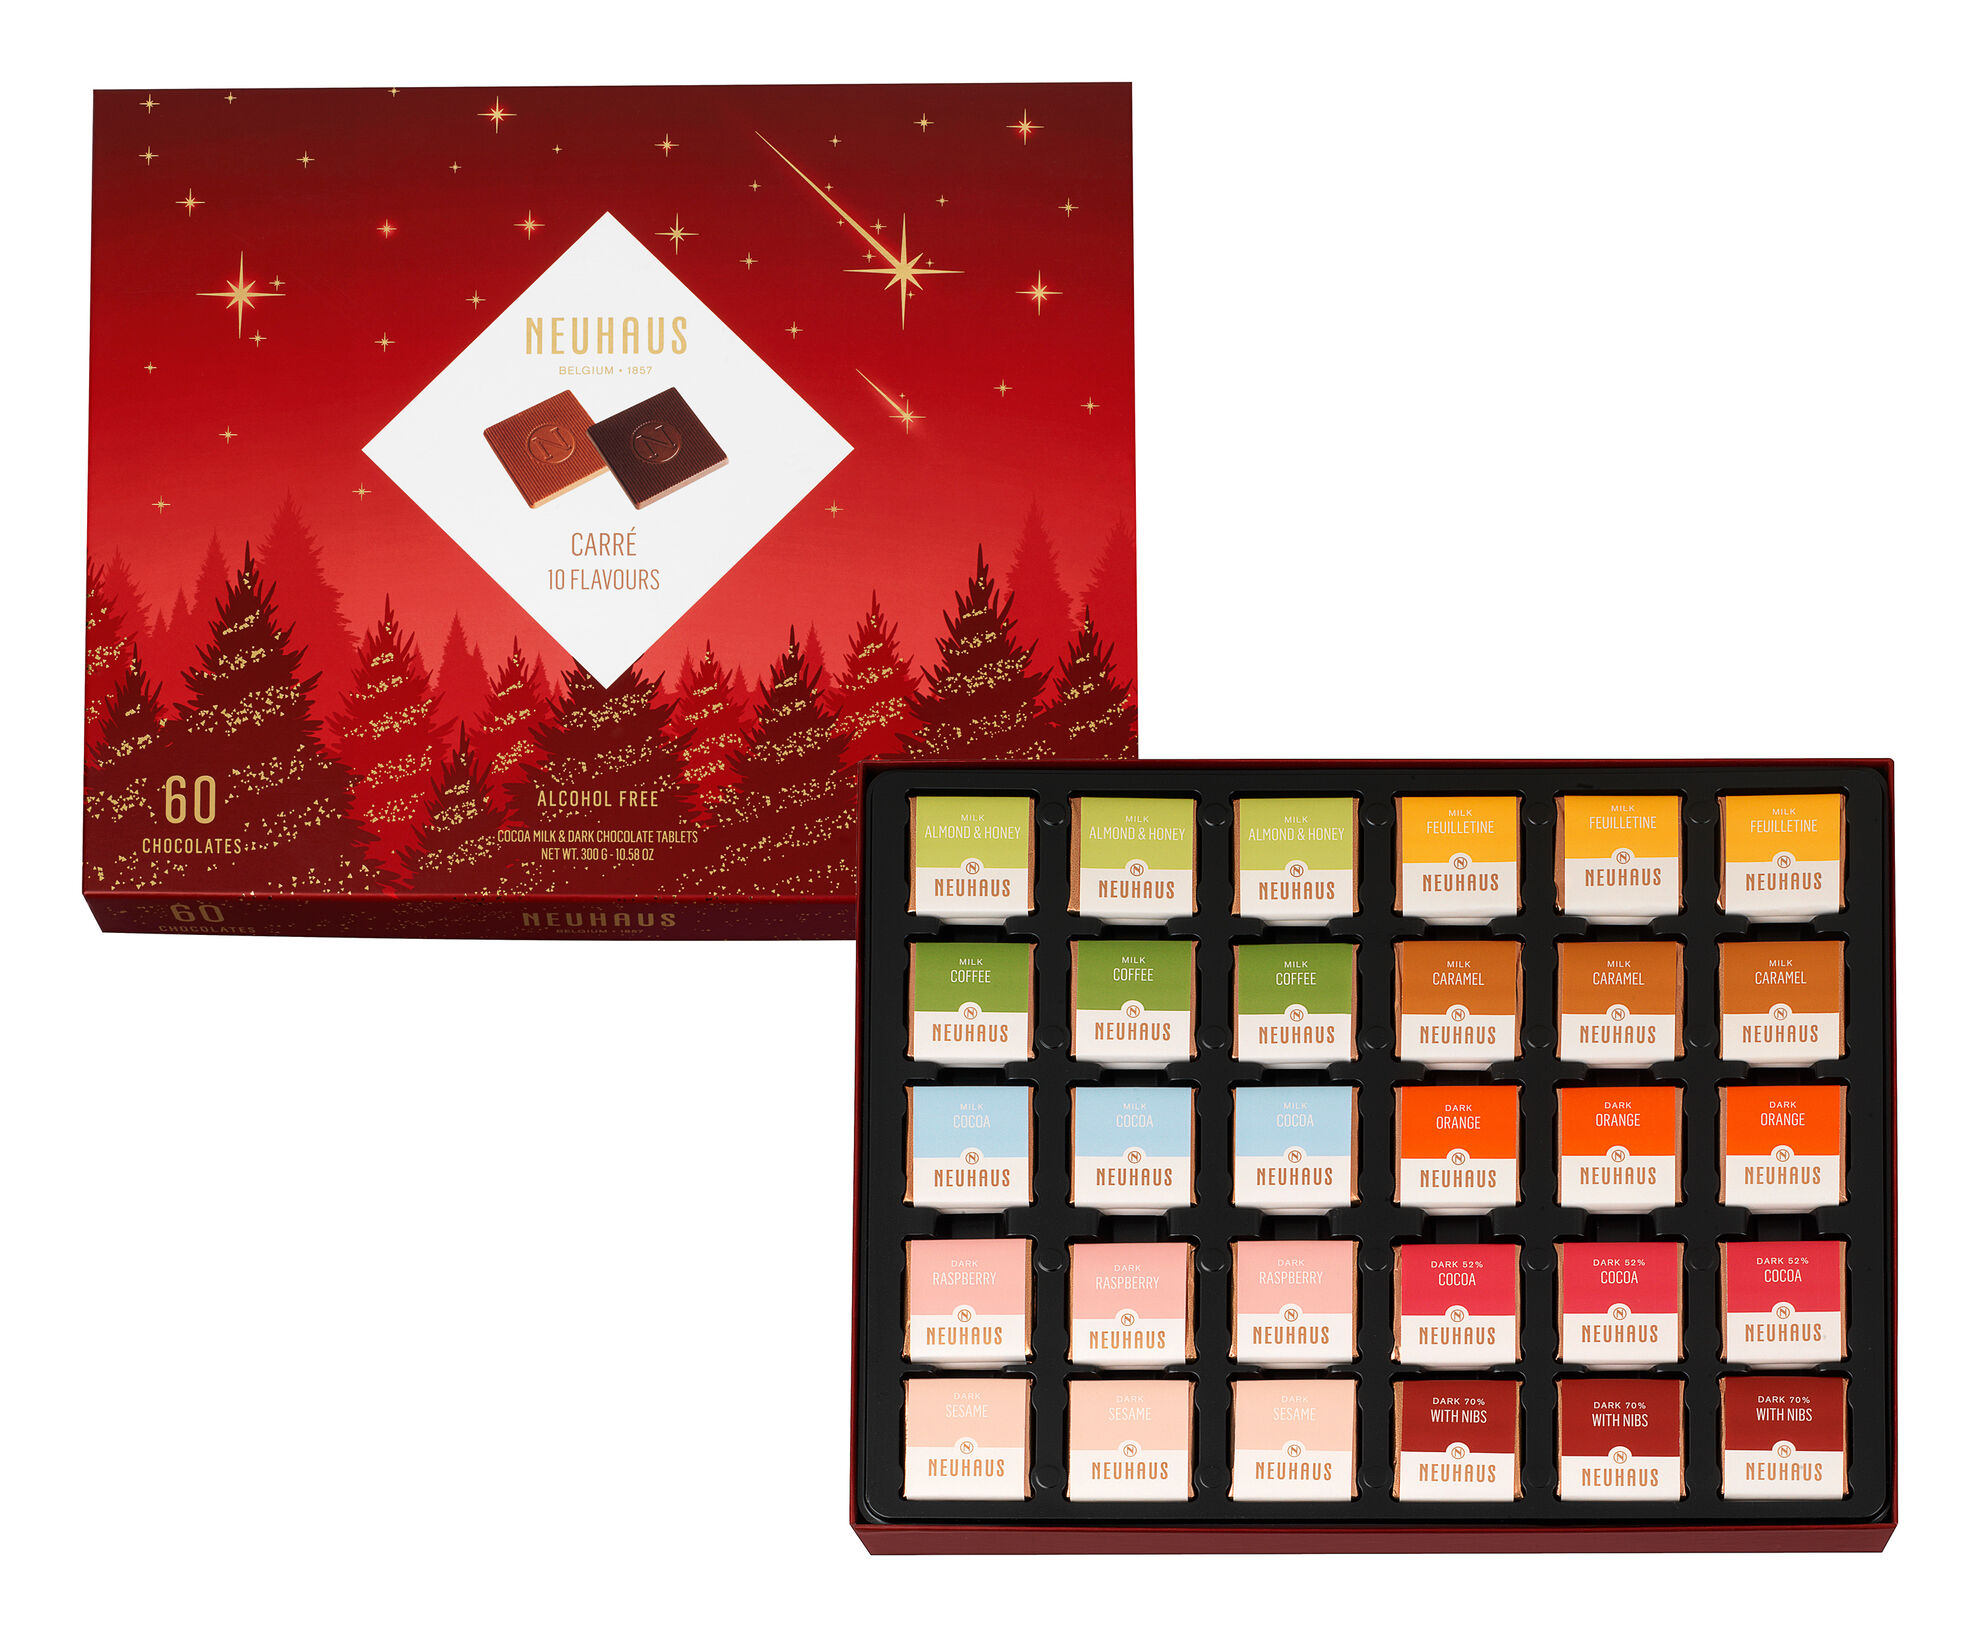 Holiday 10 Flavor Carre image number 01